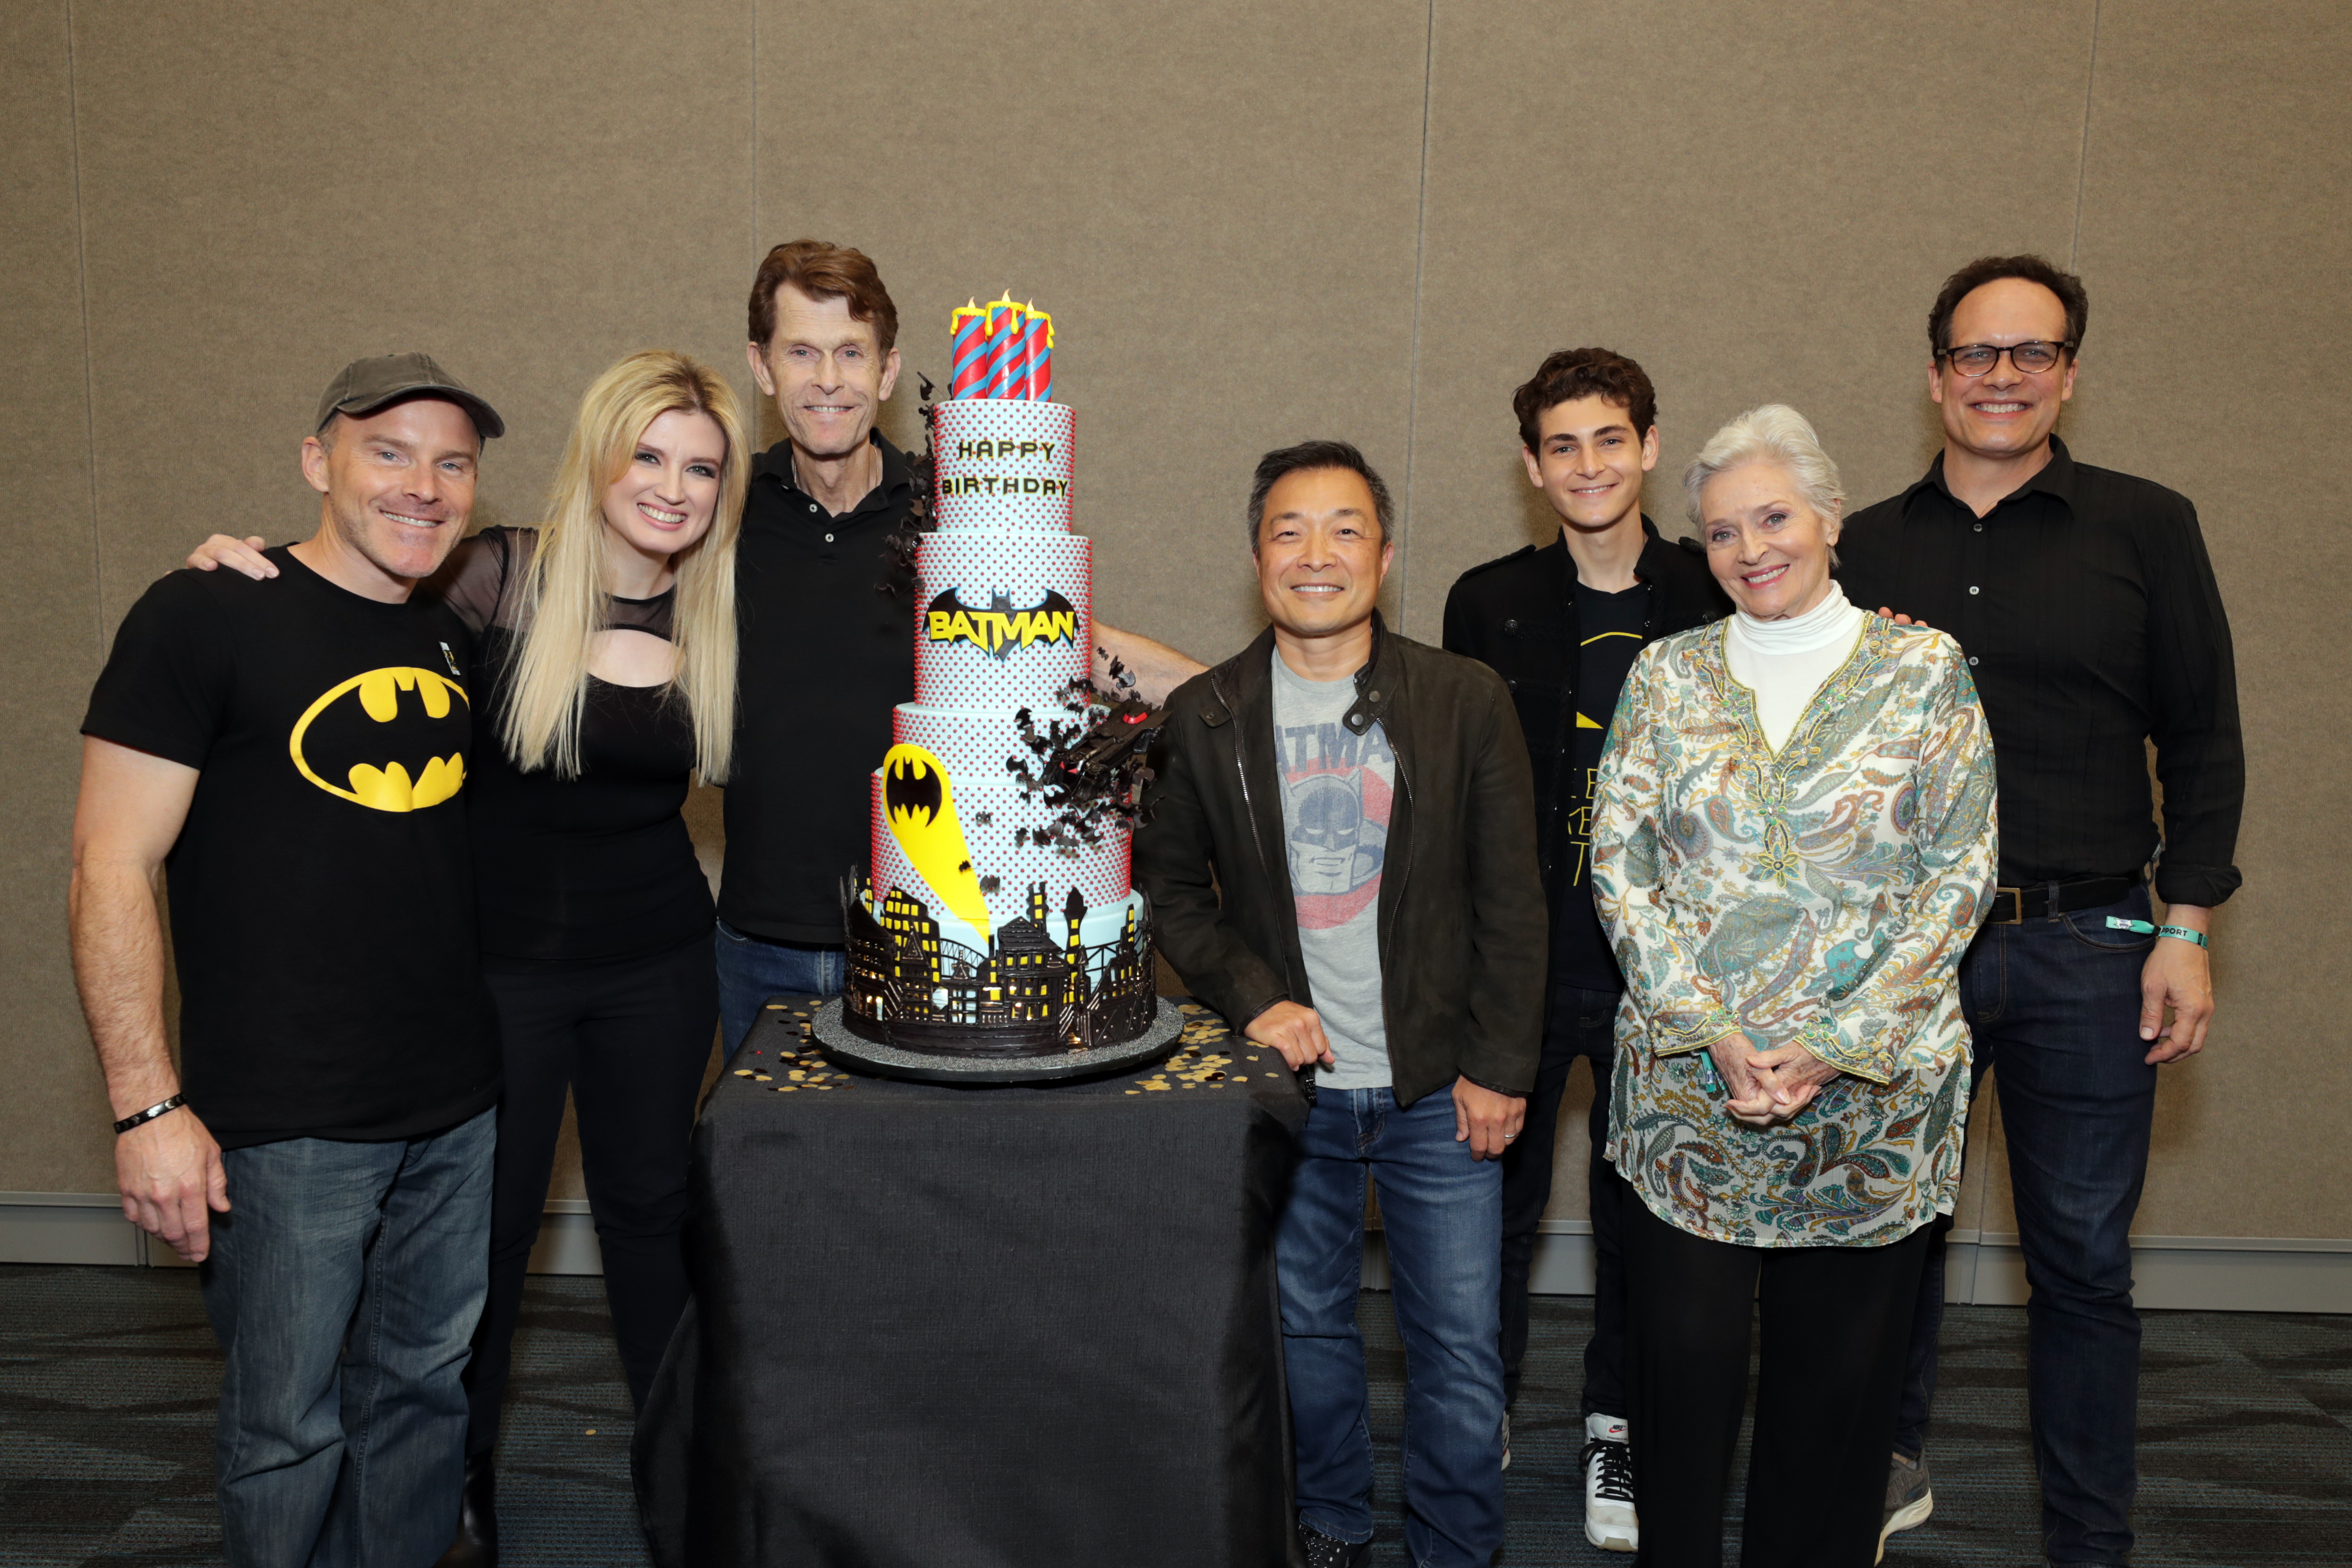 Roger Craig Smith, Grace Randolph, Kevin Conroy, DC Publisher, Jim Lee - DC Publisher, Chief Creative Officer - DC Entertainment, David Mazouz, Lee Meriwether and Diedrich Bader